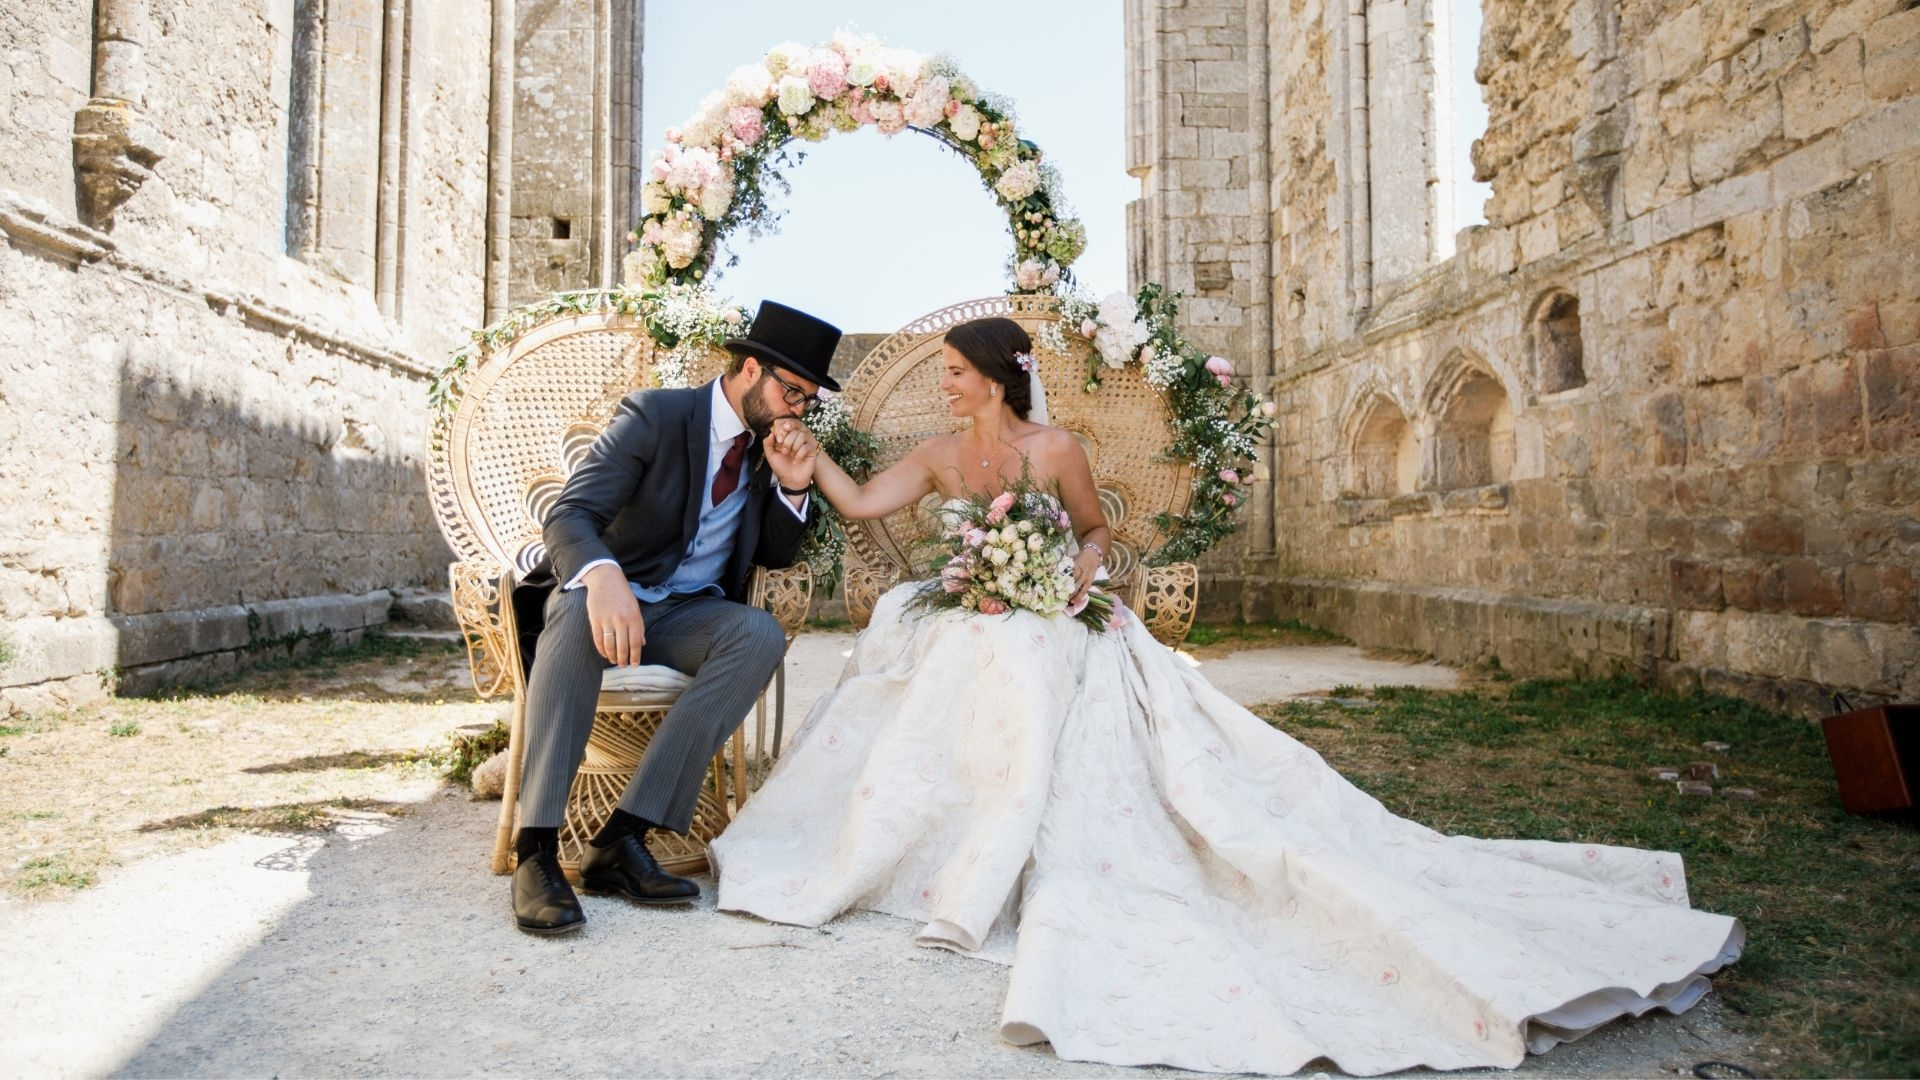 Inside The Wedding Of Charlotte Ricard-Quesada And Antonio Quesada